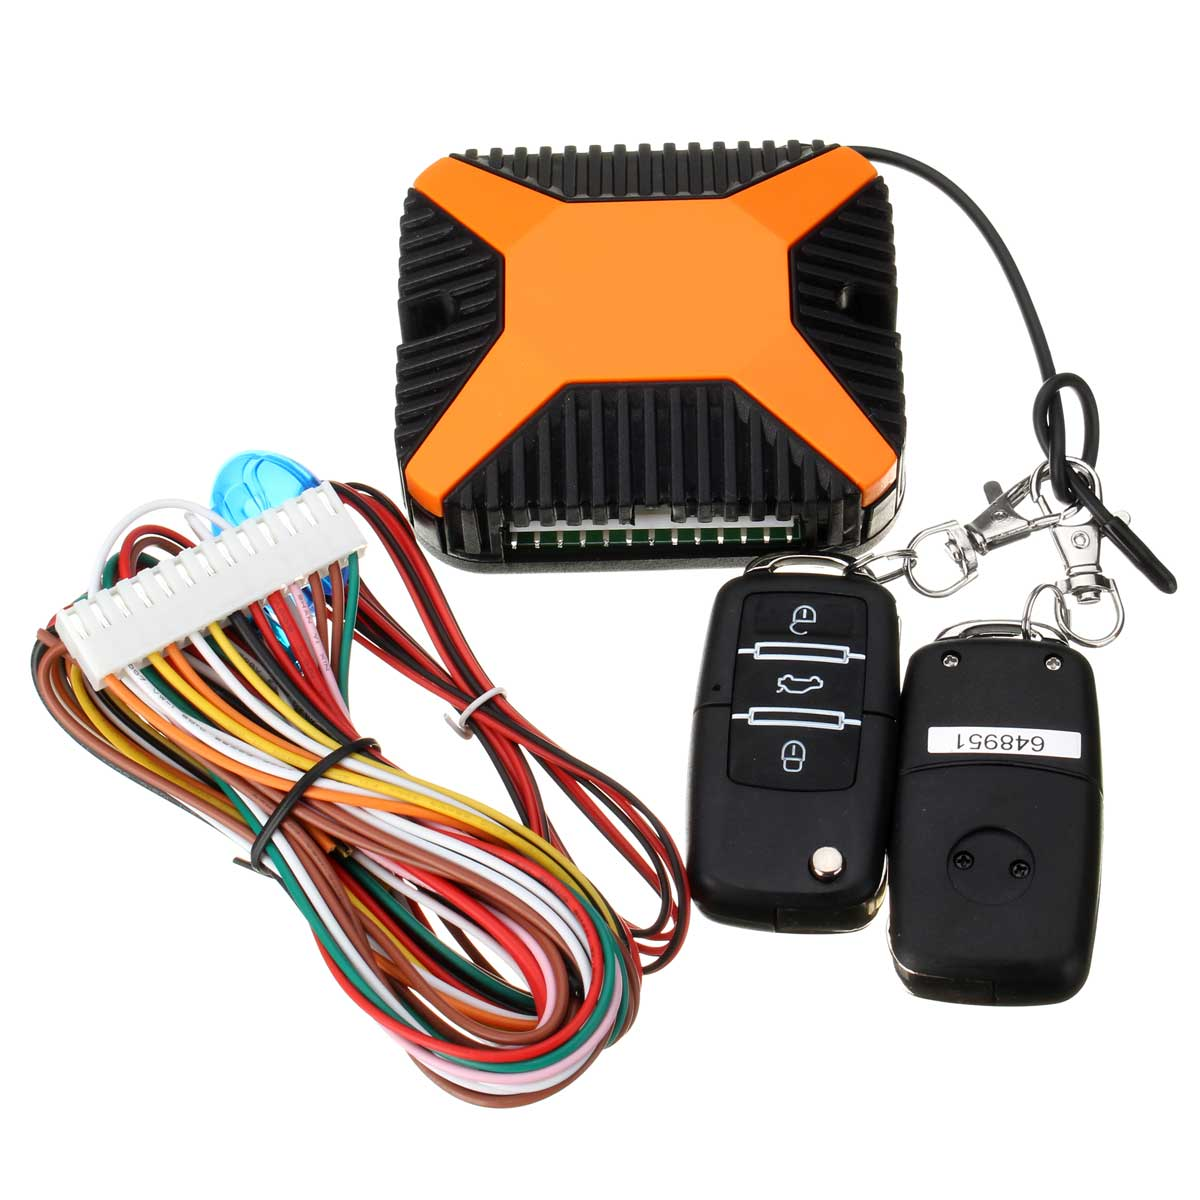 Auto Keyless Entry With Flip Key Remote Car Central Locking System With Rise Window Automaticly For LADA Passat